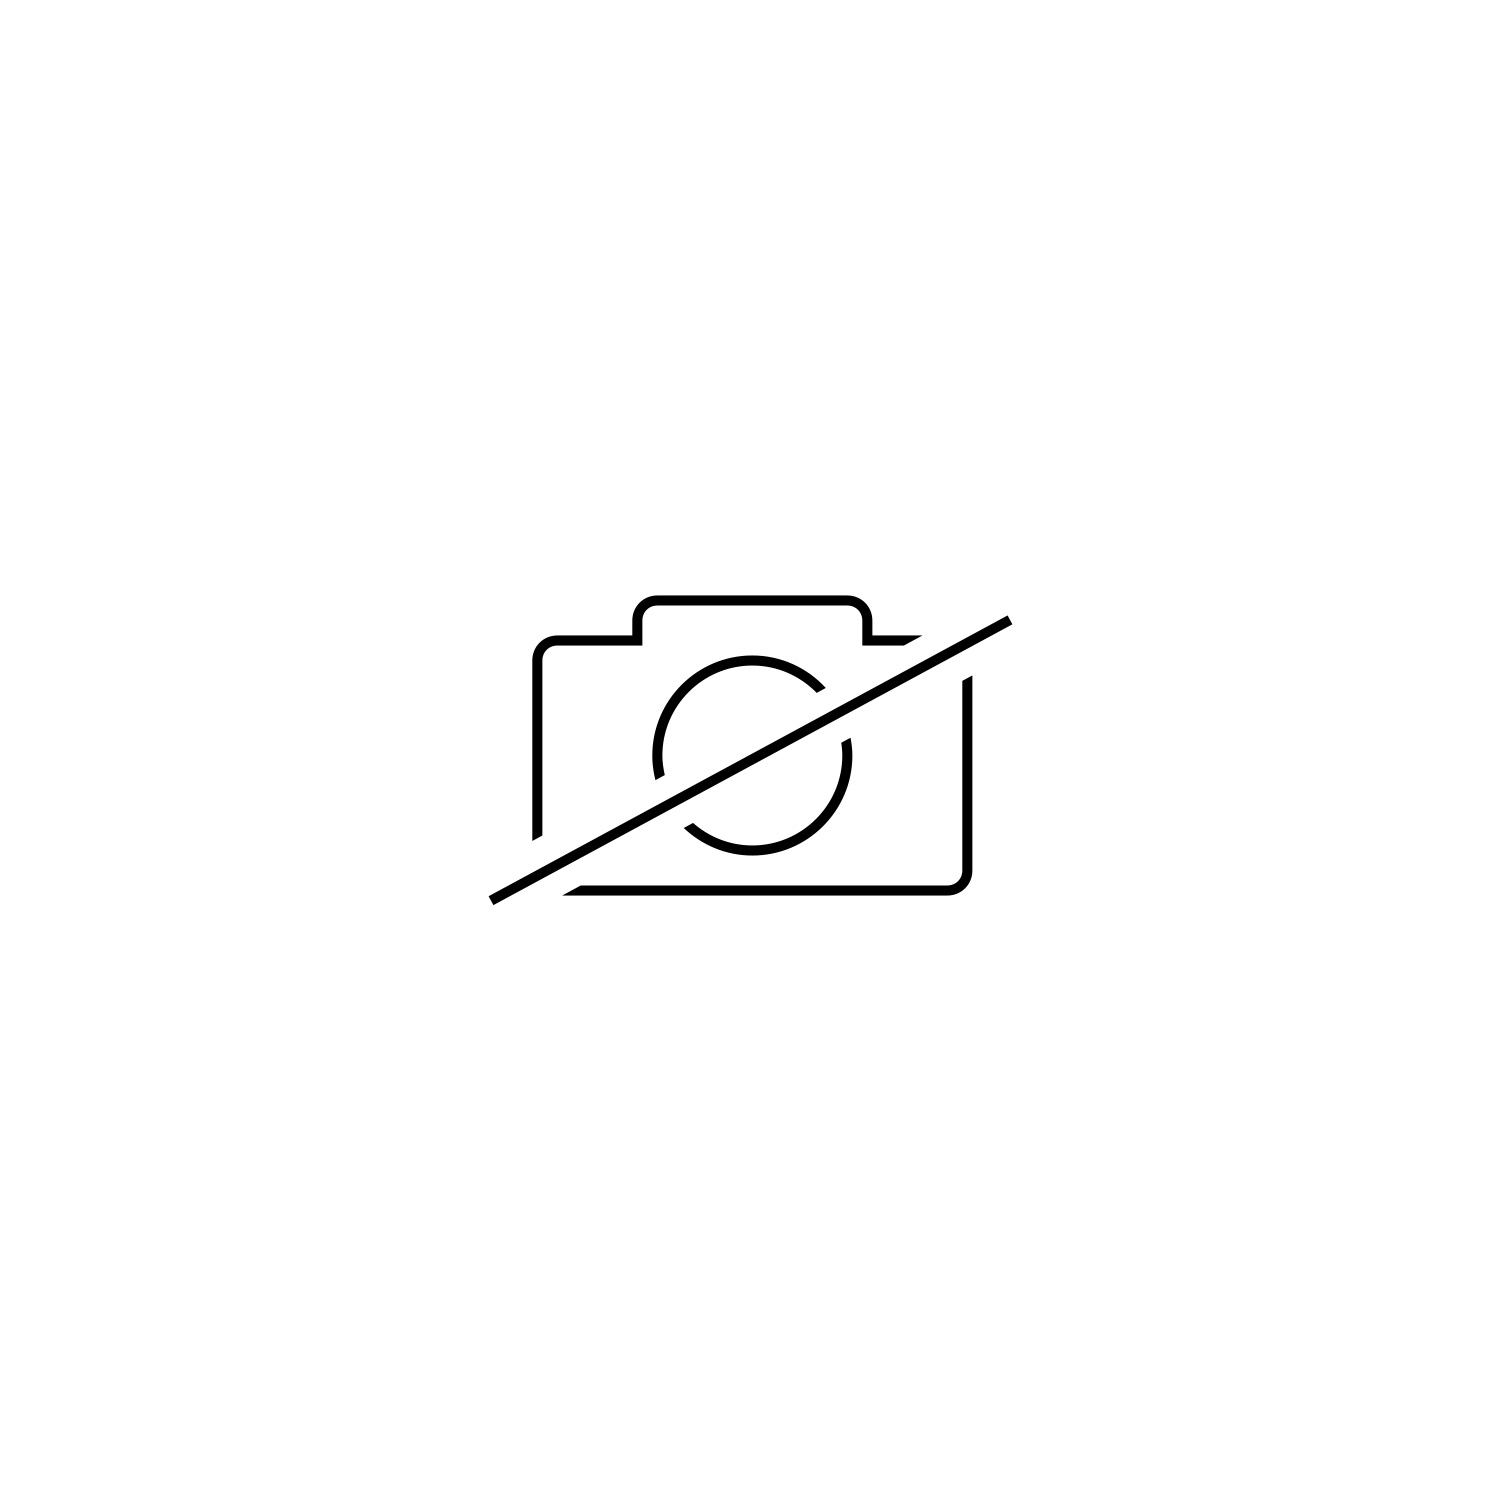 Audi Poloshirt, Mens, Dark grey, S